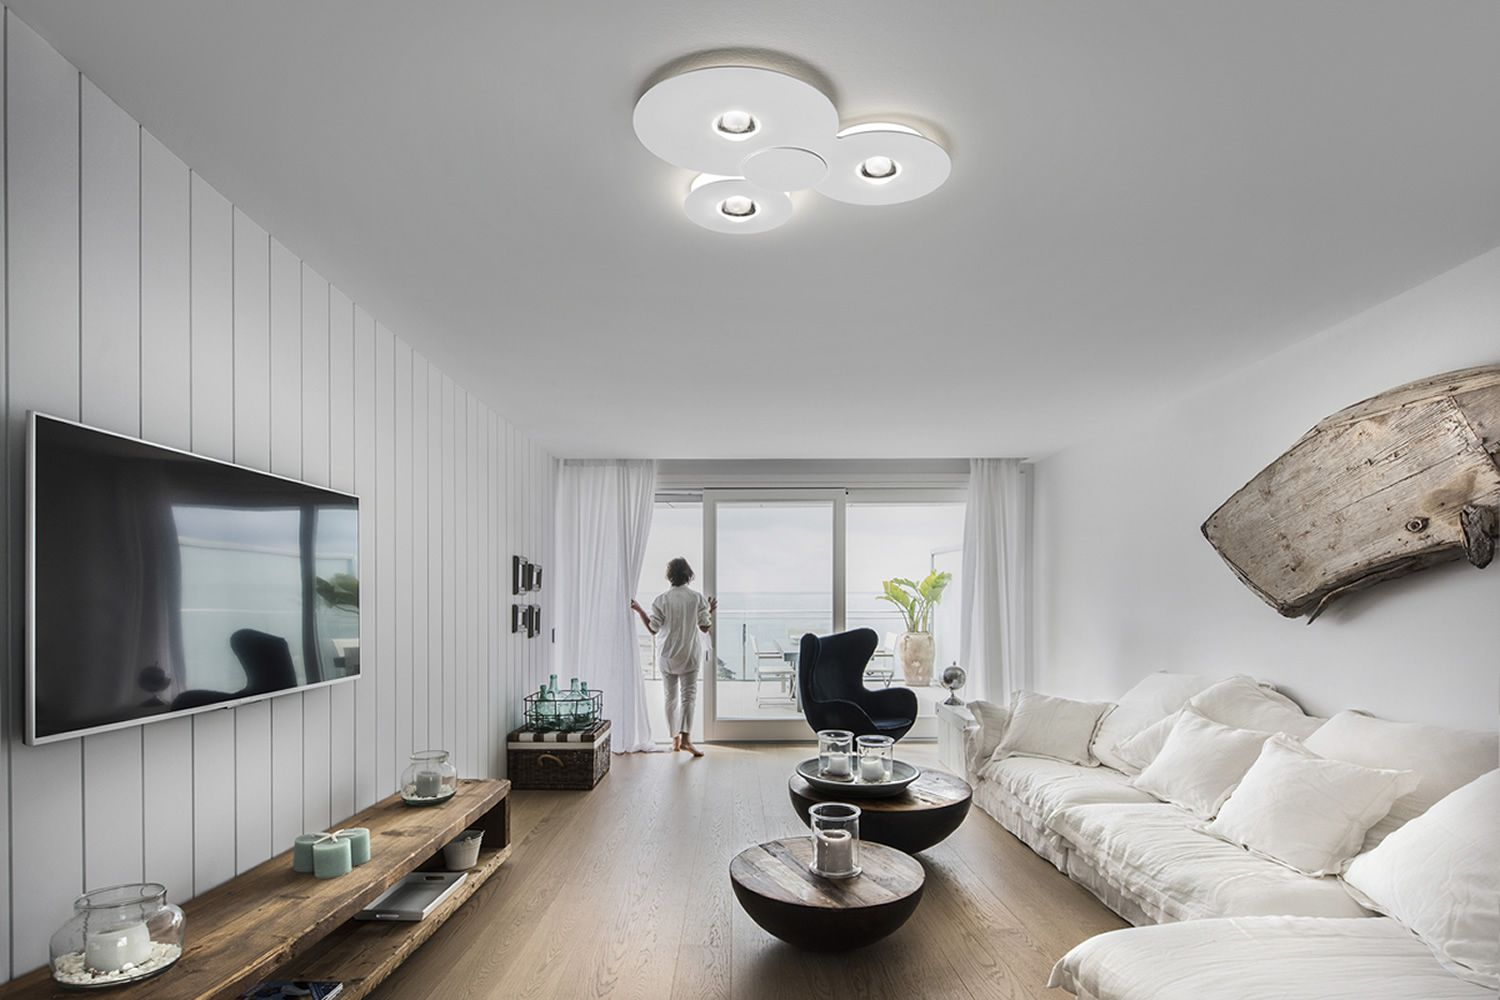 Bugia lampada da soffitto di design in metallo e for Lampadari calligaris